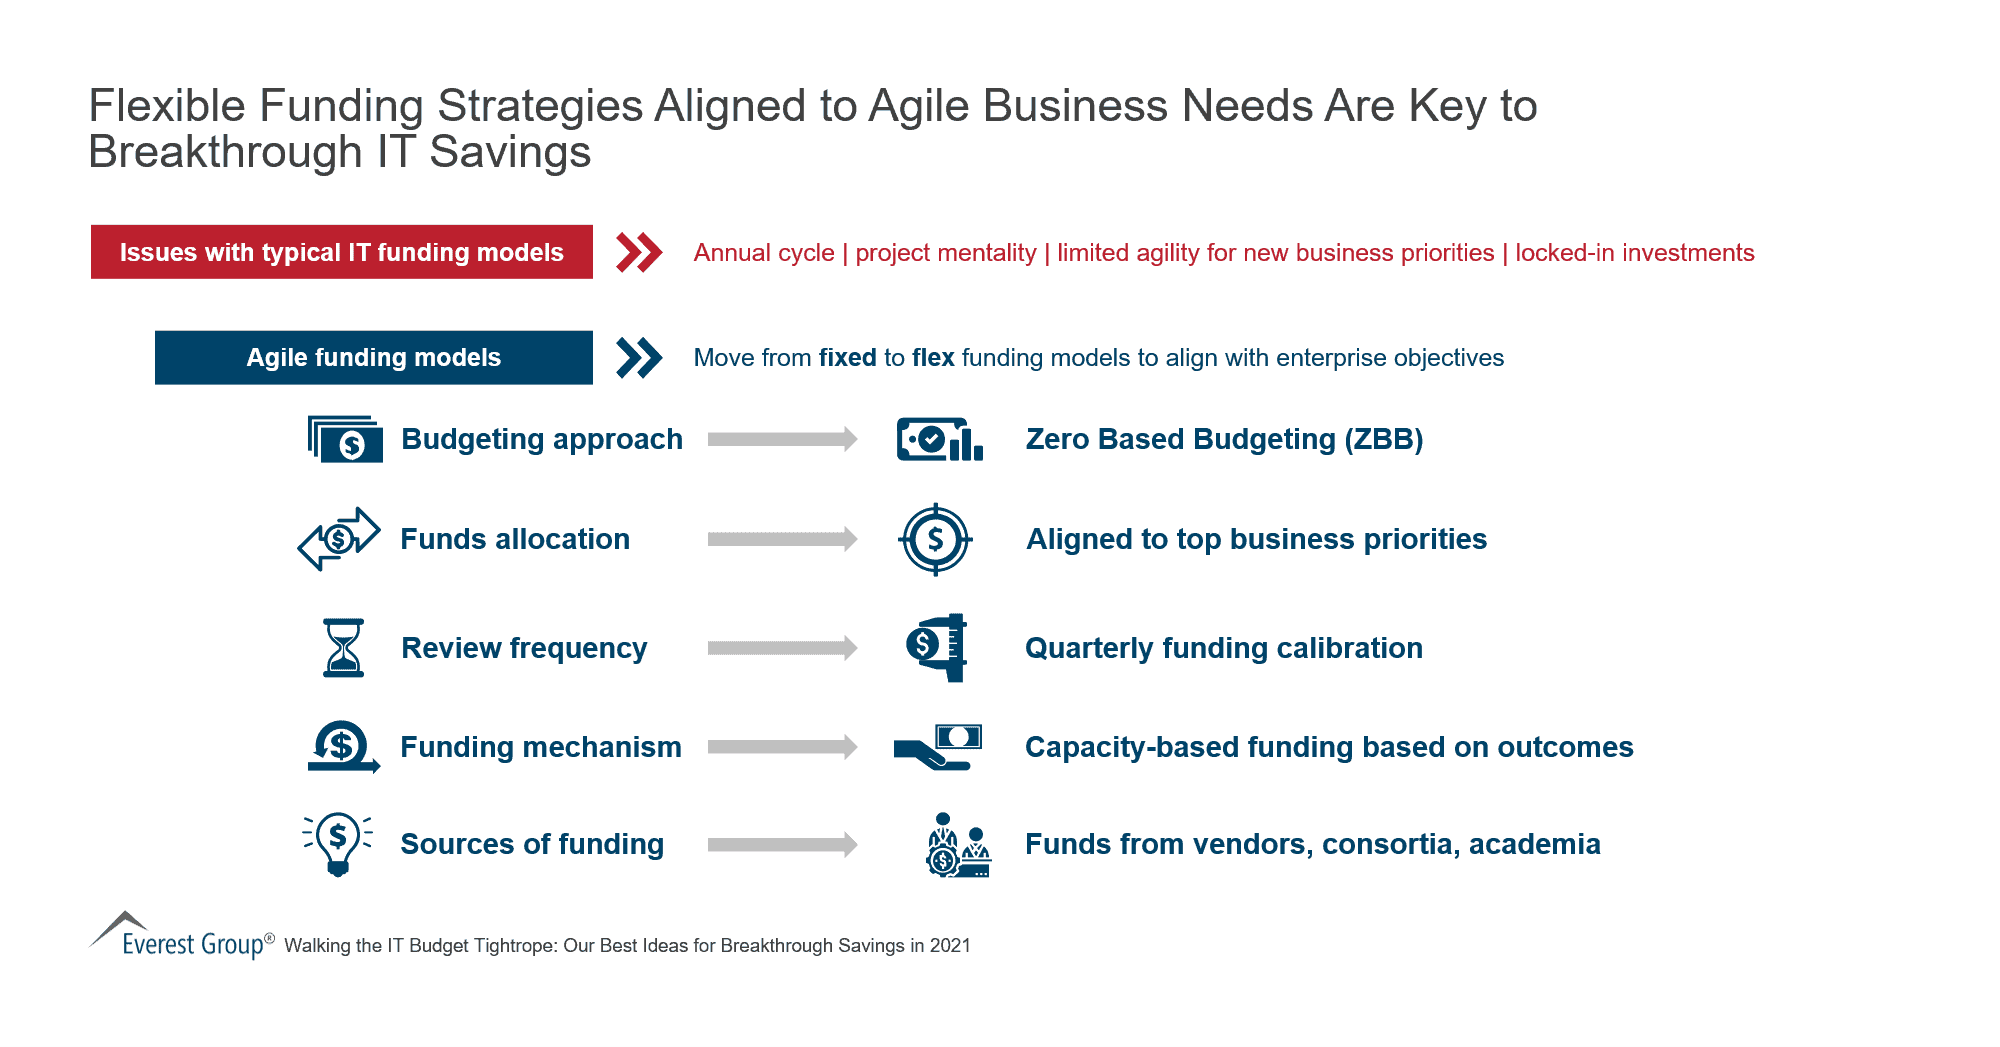 Flexible Funding Strategies Aligned to Agile Business Needs Are Key